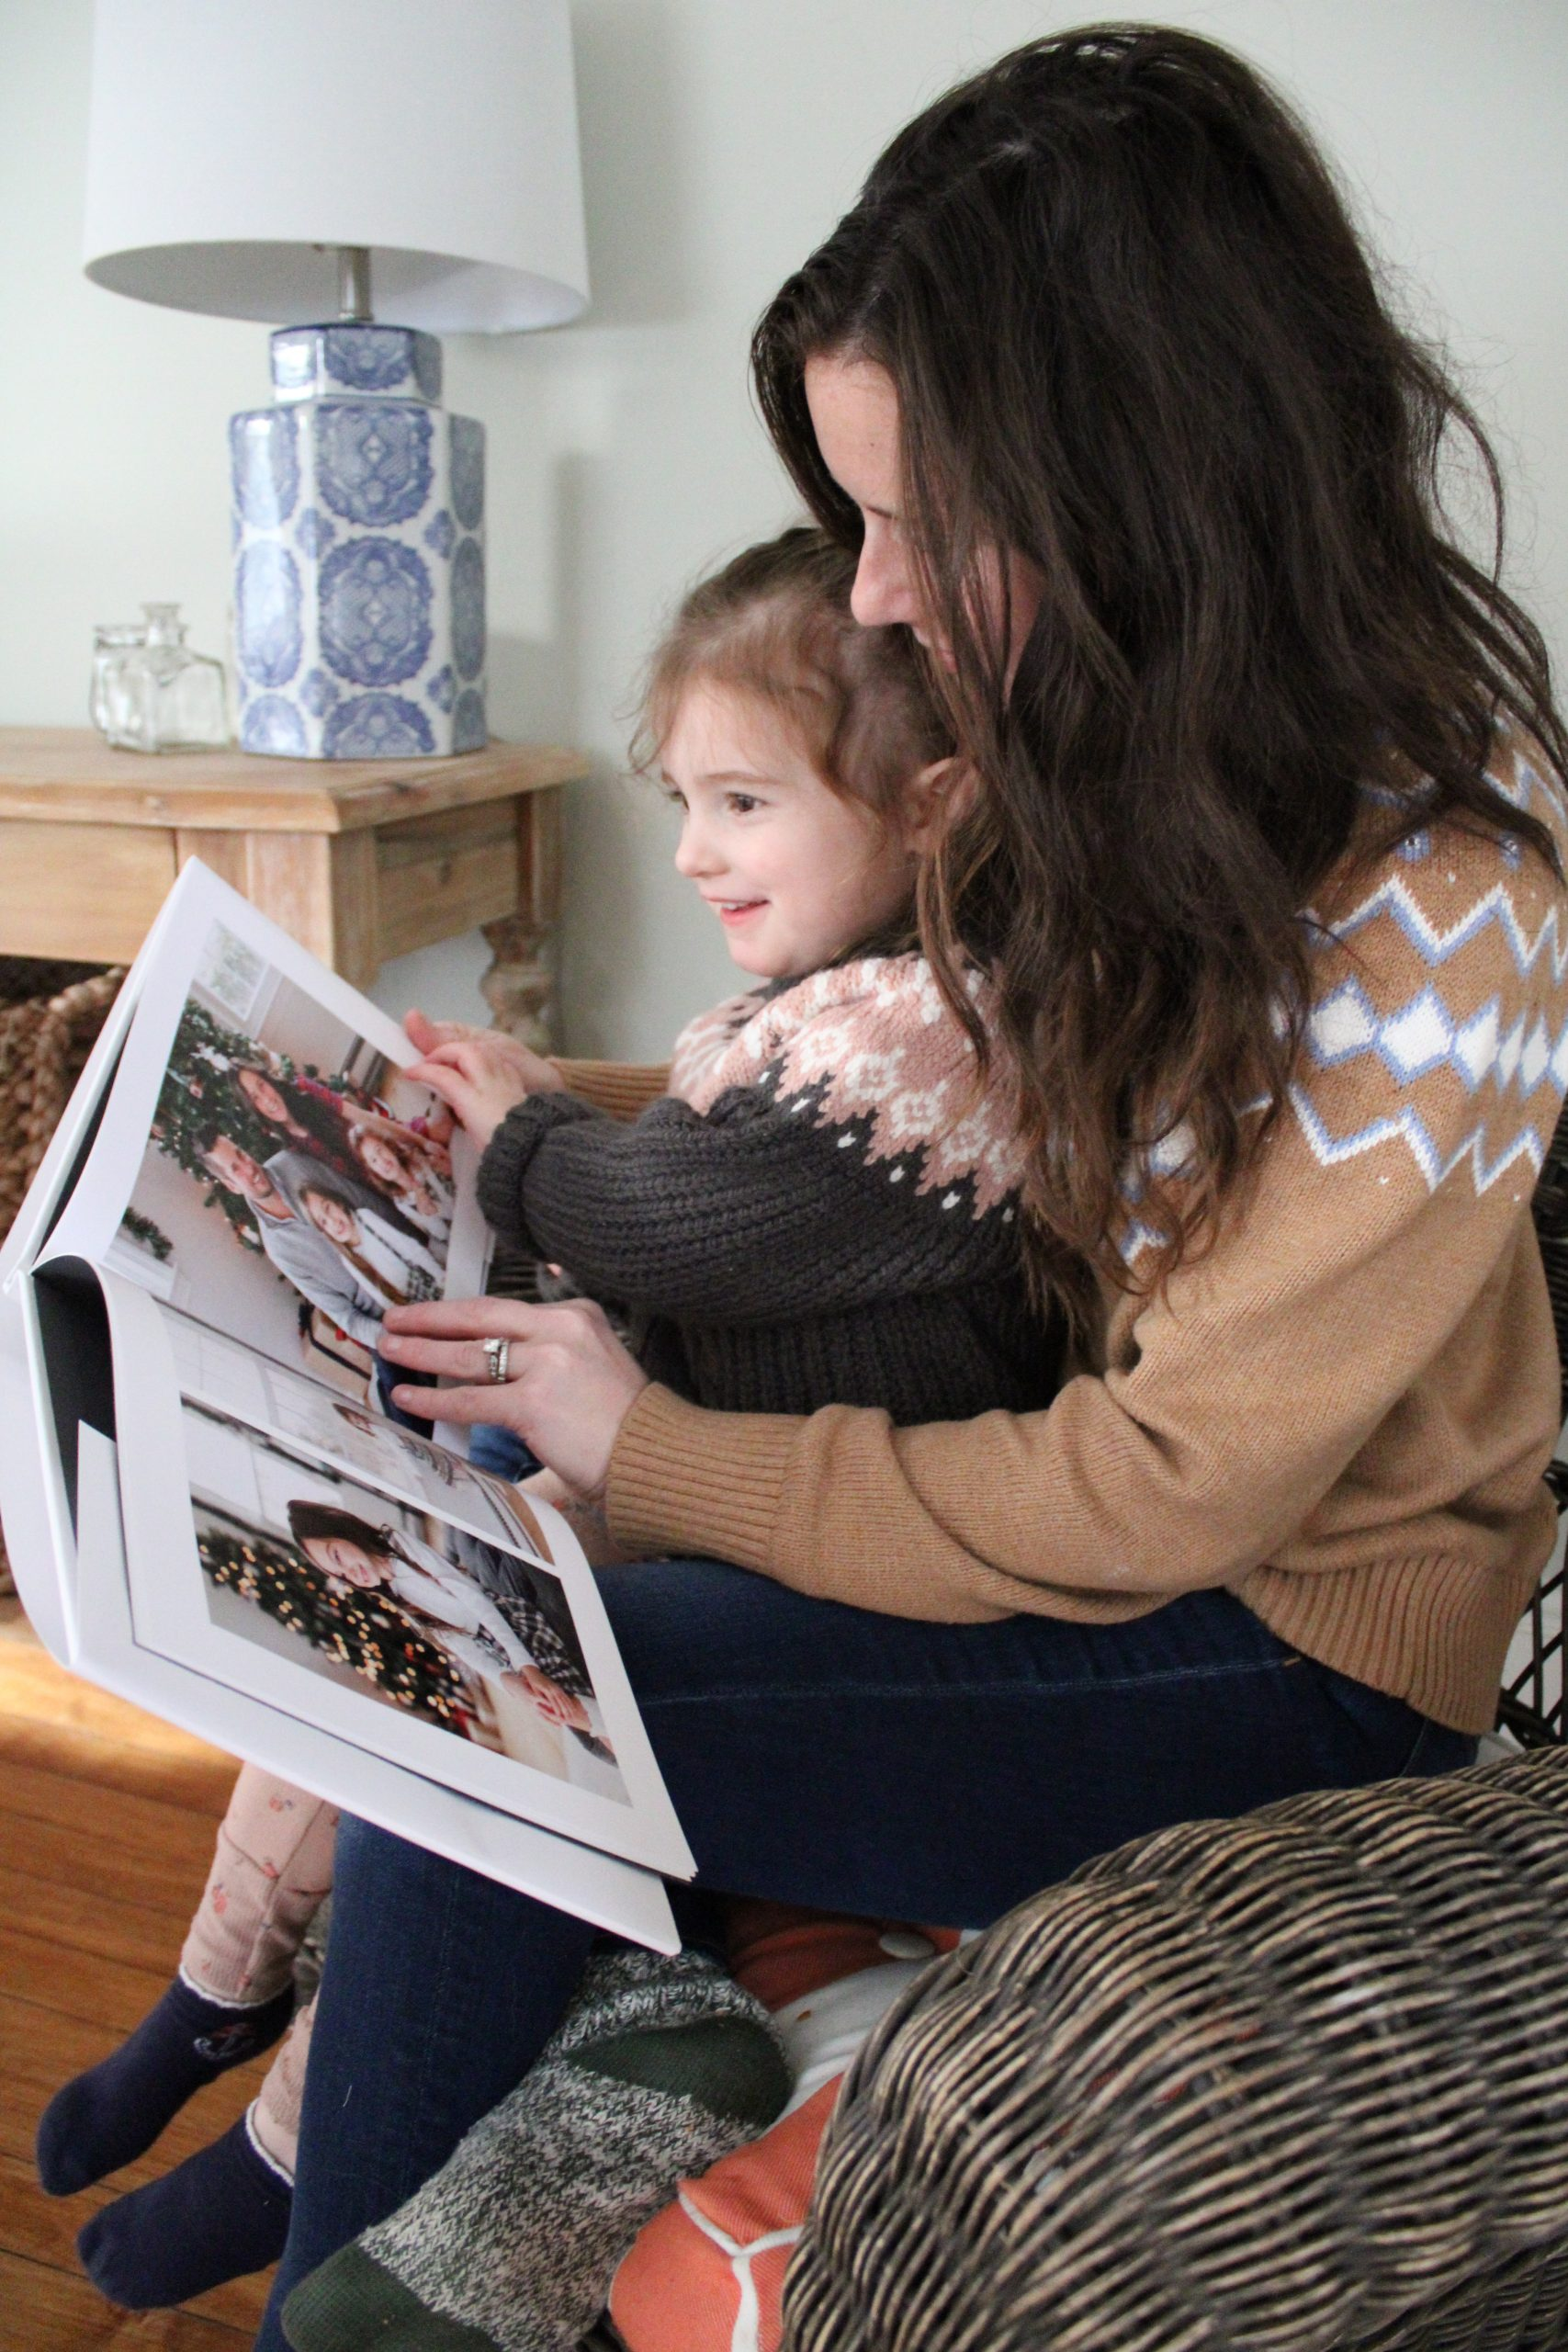 Mom and Daughter looking at Photo Book